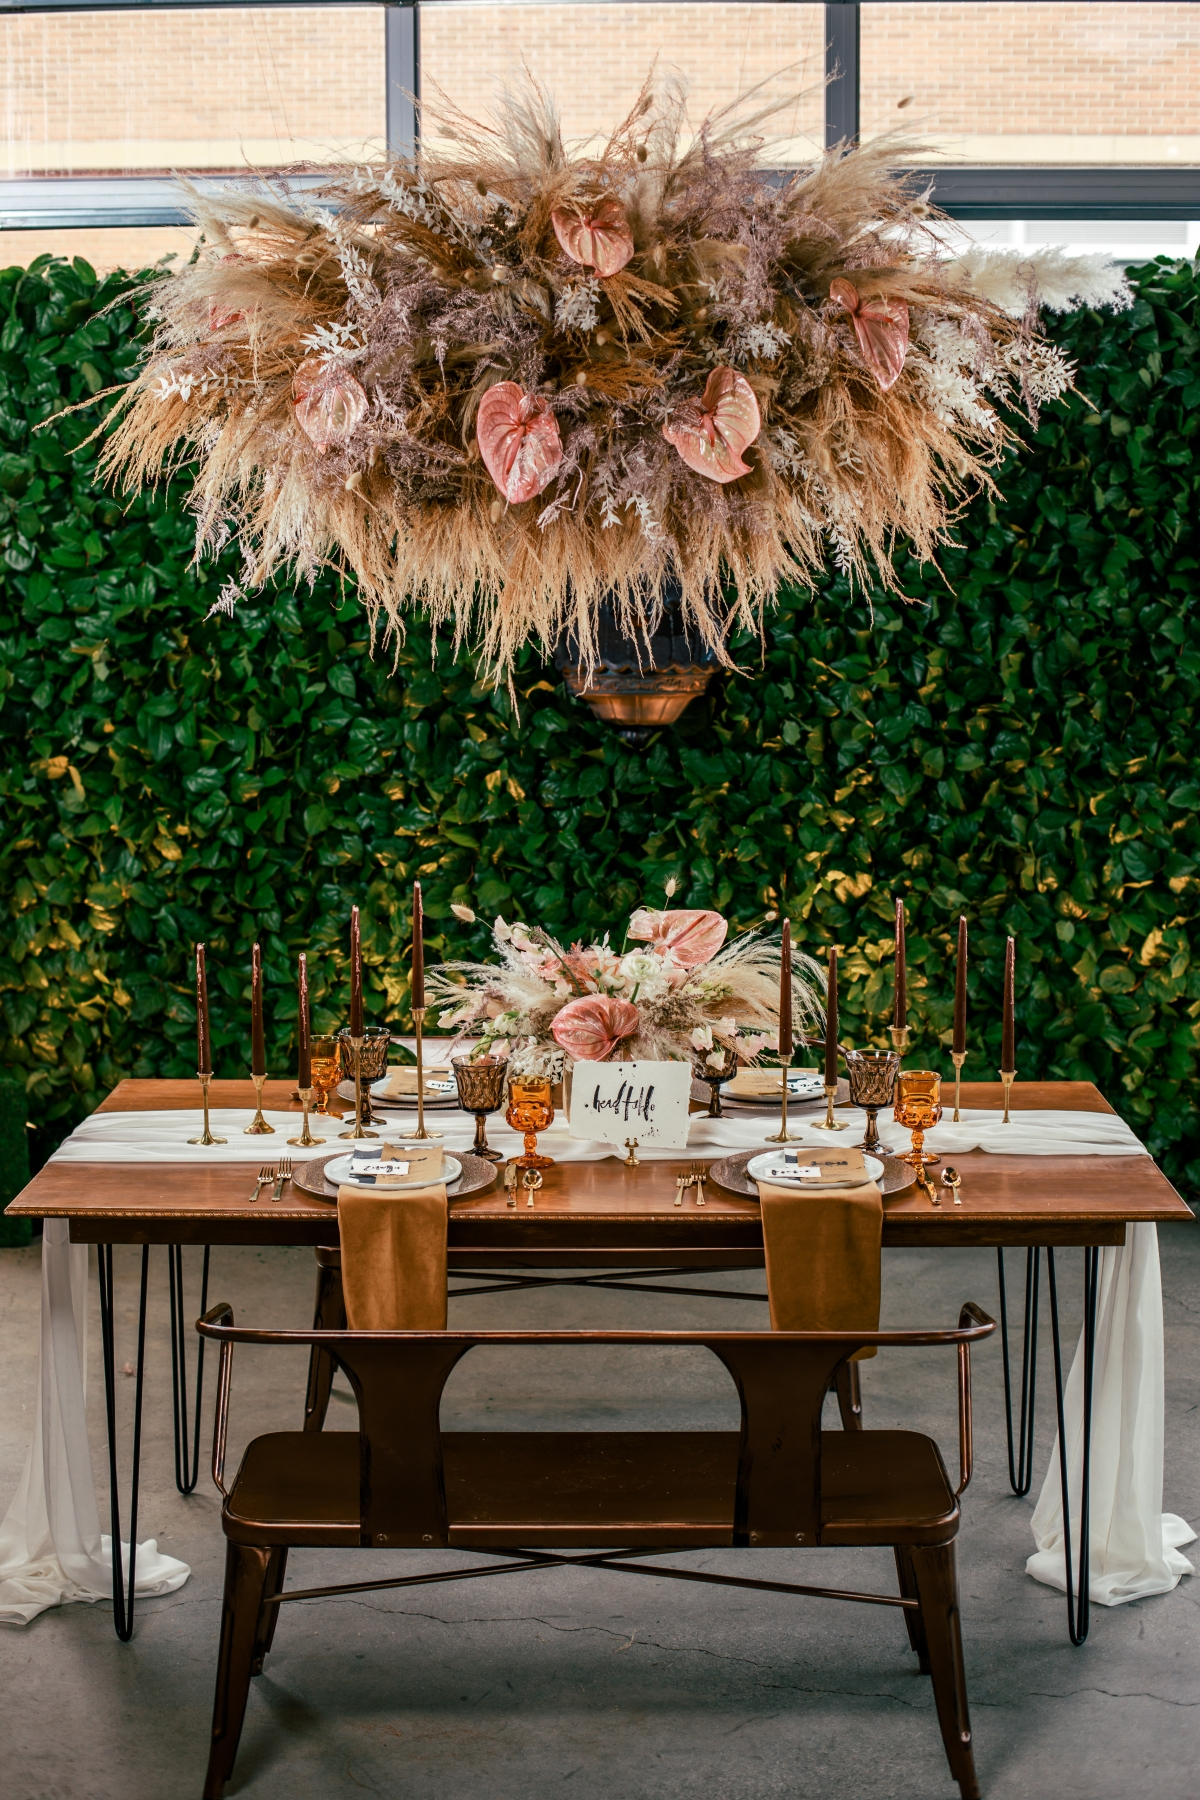 Lush Fantasy Chicago Wedding Inspiration Lakeshore in Love Tuan B 23